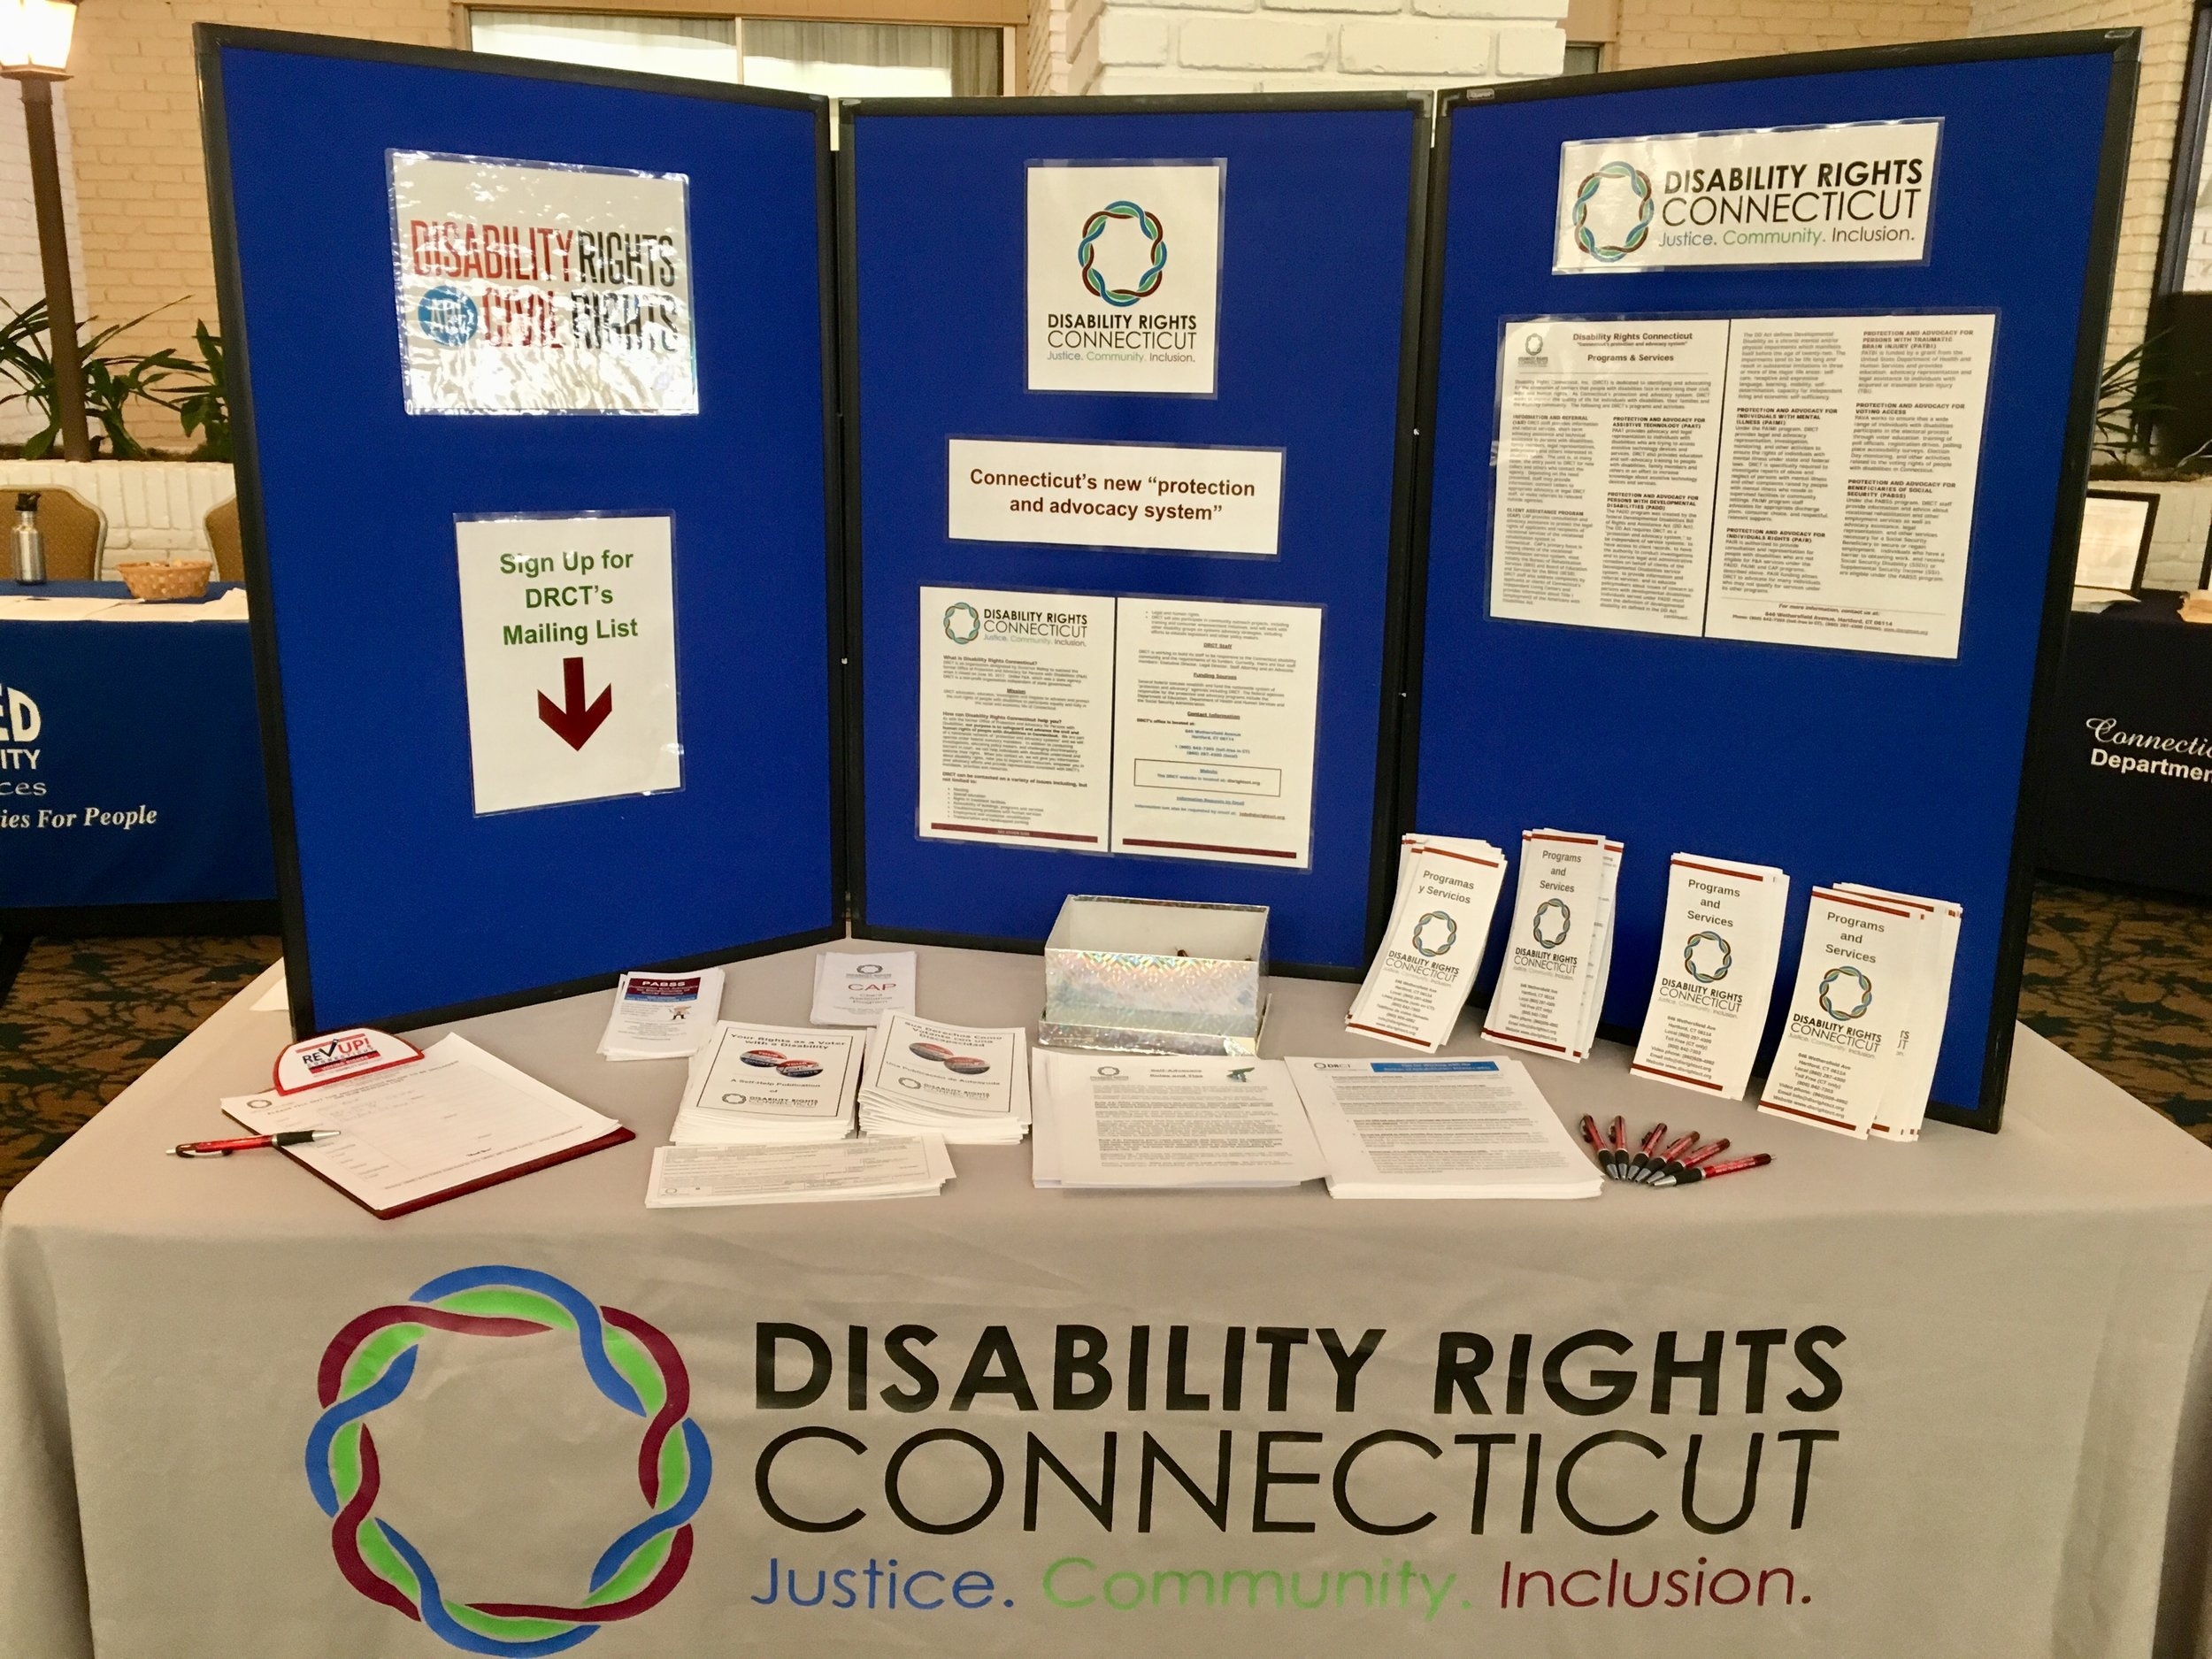 Disability Rights Connecticut's informational booth with PAMPHLETS and flyers at the ACQUIRED brain injury conference.